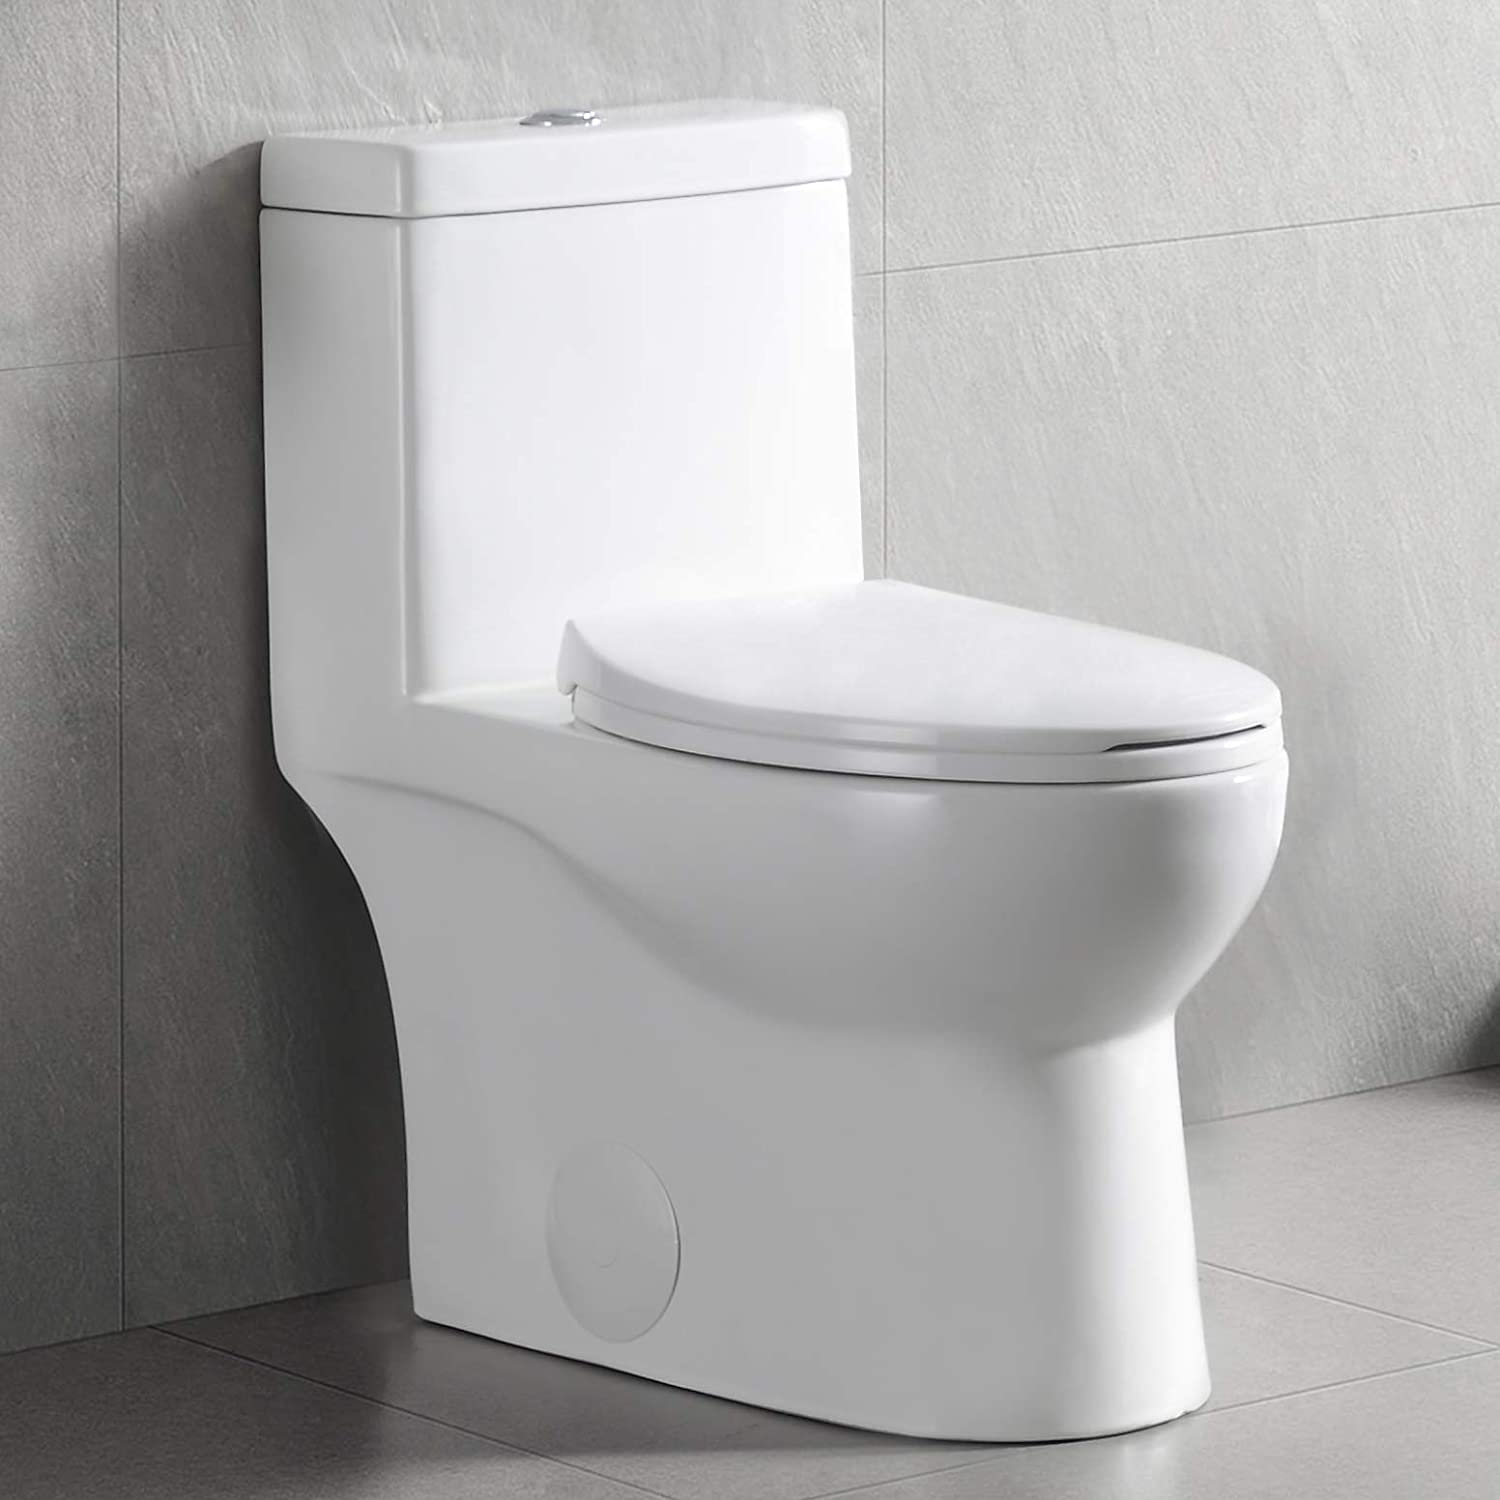 Deervalley Dv 1f52816 White Ceramic Standard Comfort Height Elongated Dual Flush One Piece Toilet With Soft Closing And Quick Release Toilet Seat Amazon Com